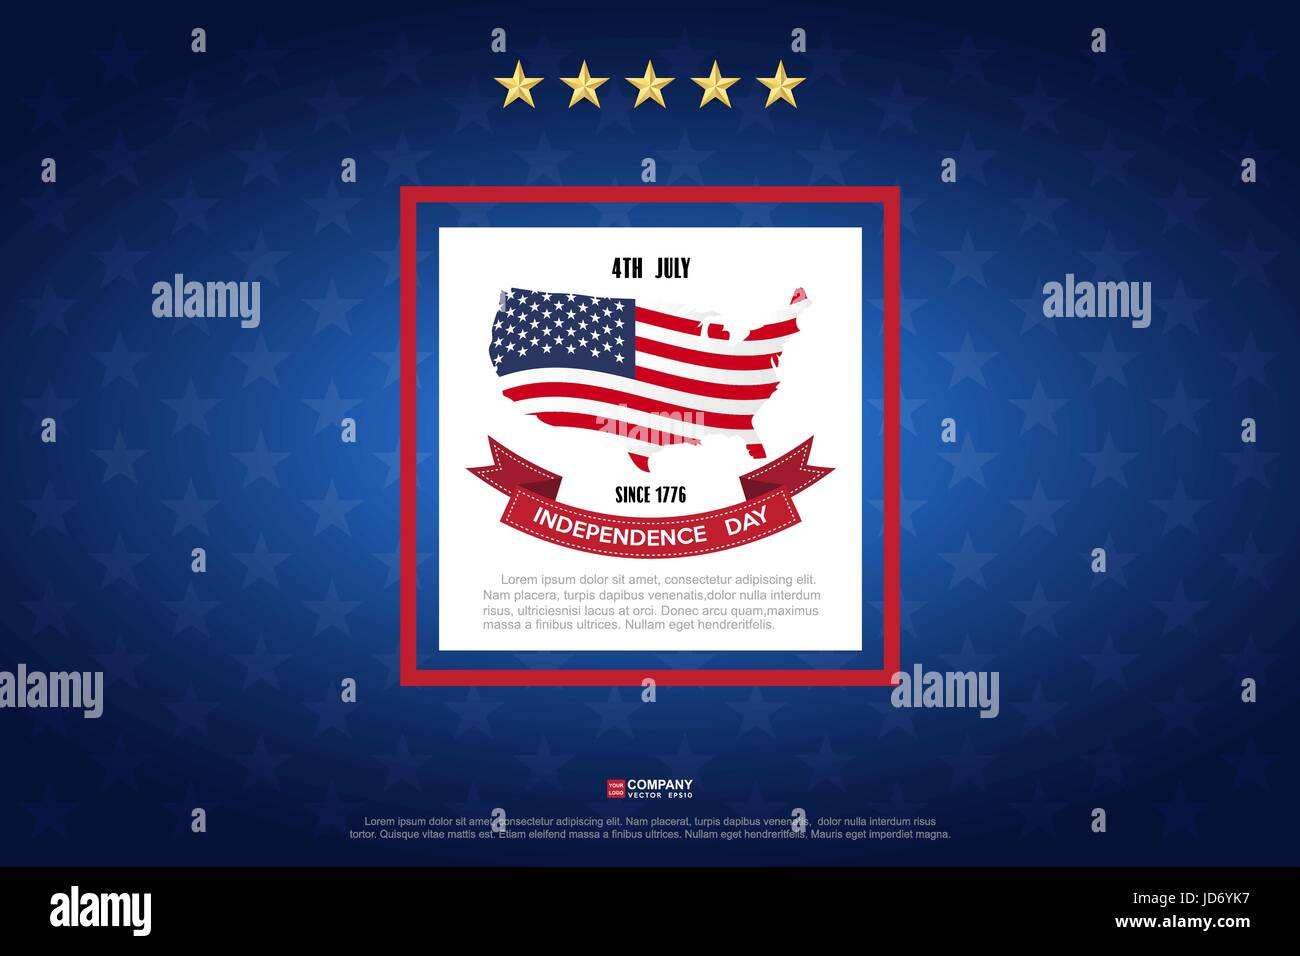 Independence day design element, Vector eps10 - Stock Image